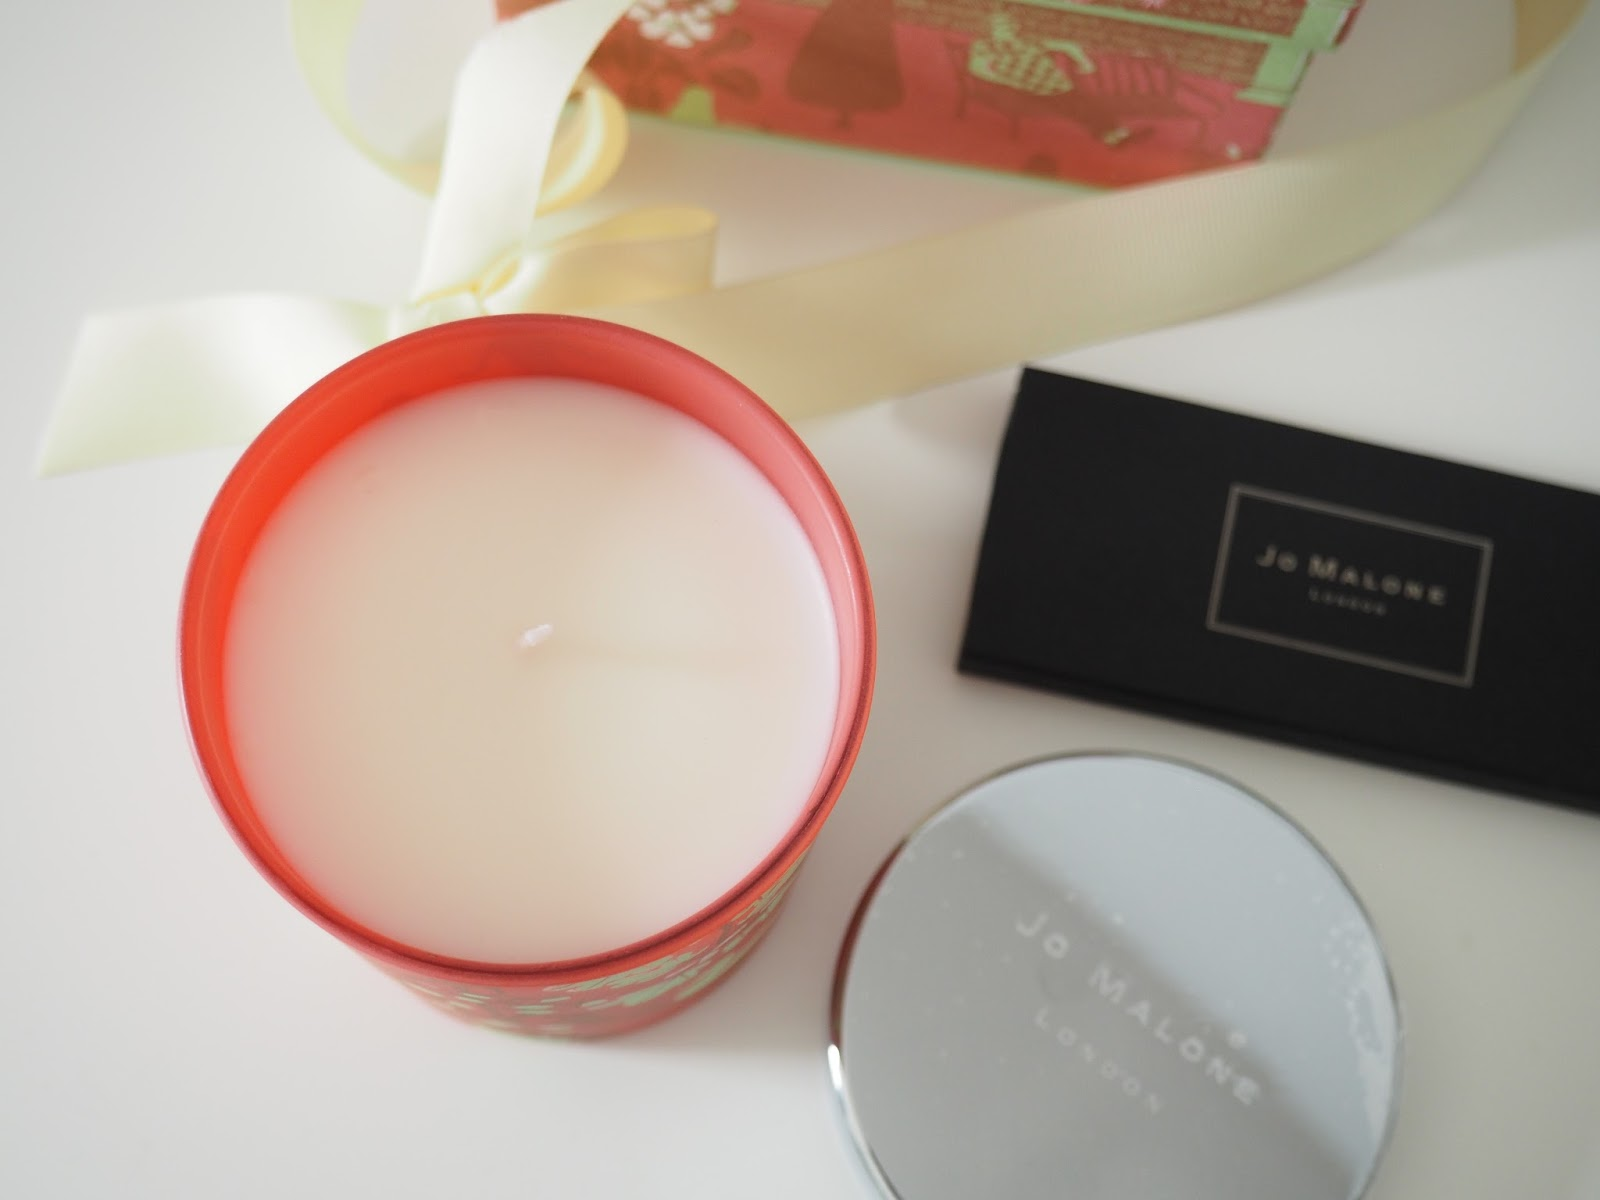 Jo Malone Marthe Armitage review limited edition green tomato leaf candle